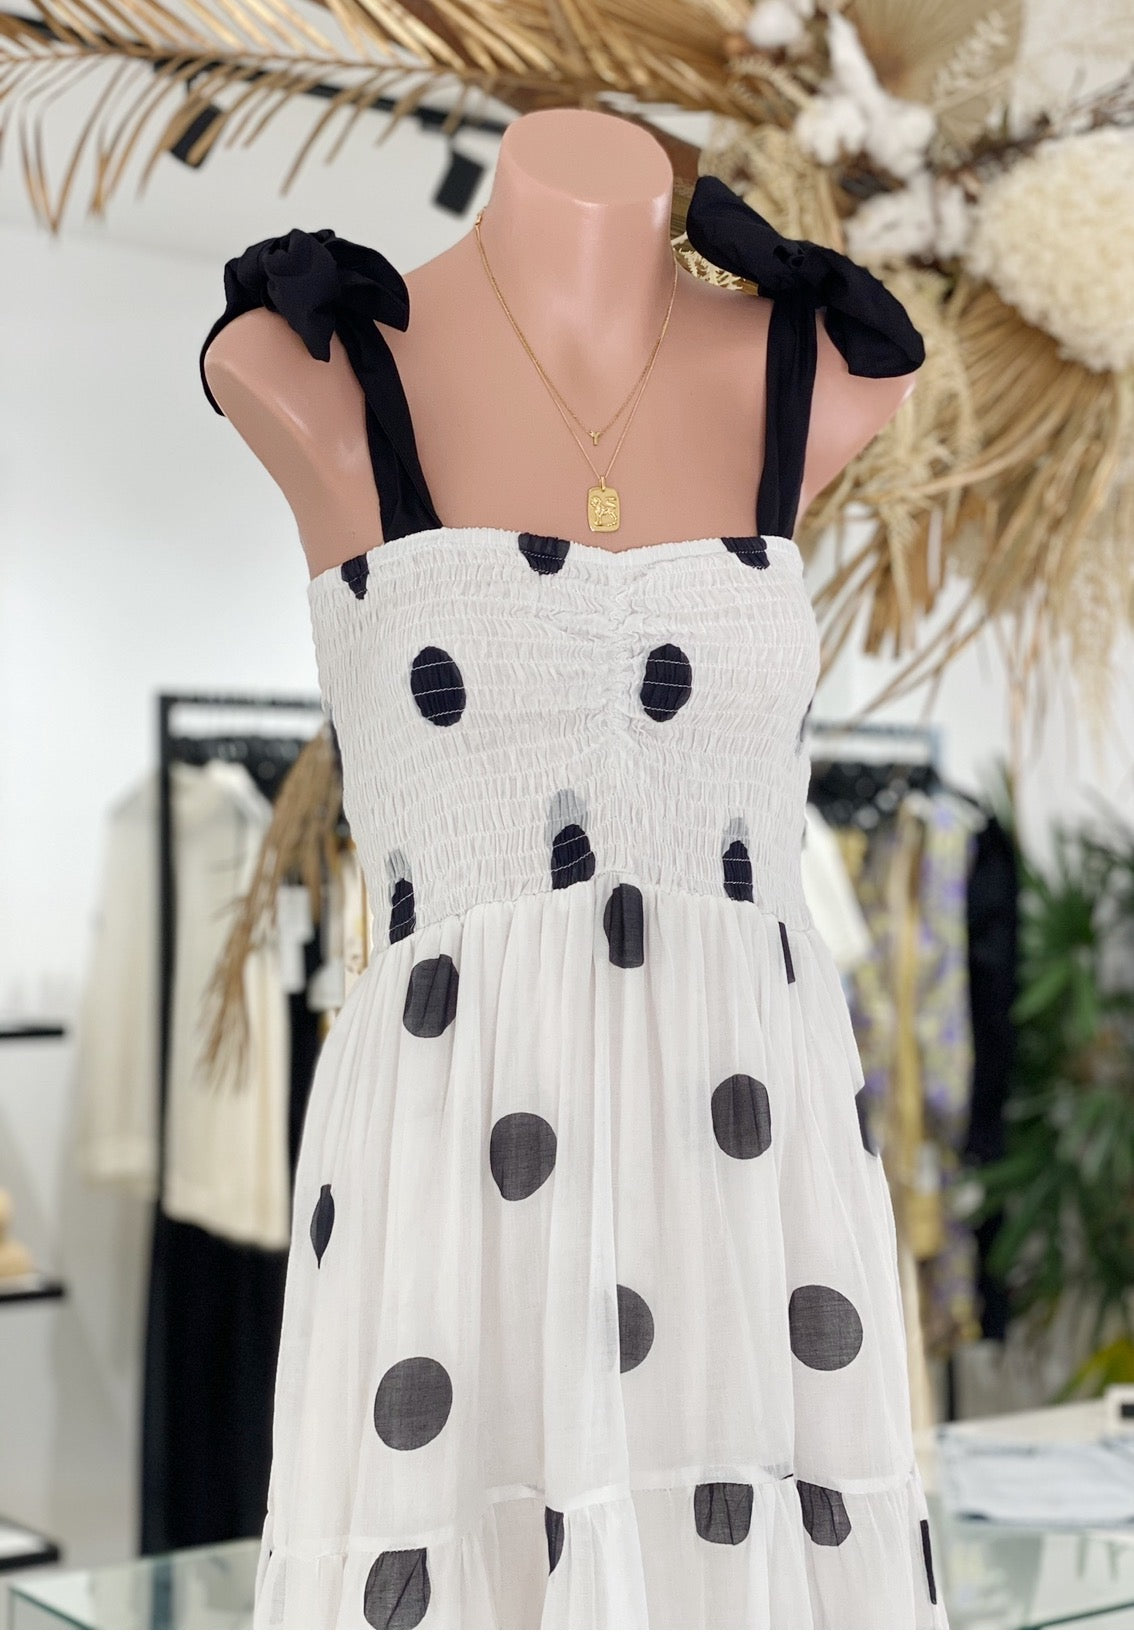 ÉSS THE LABEL Grace Dress - Cream/Black Spot